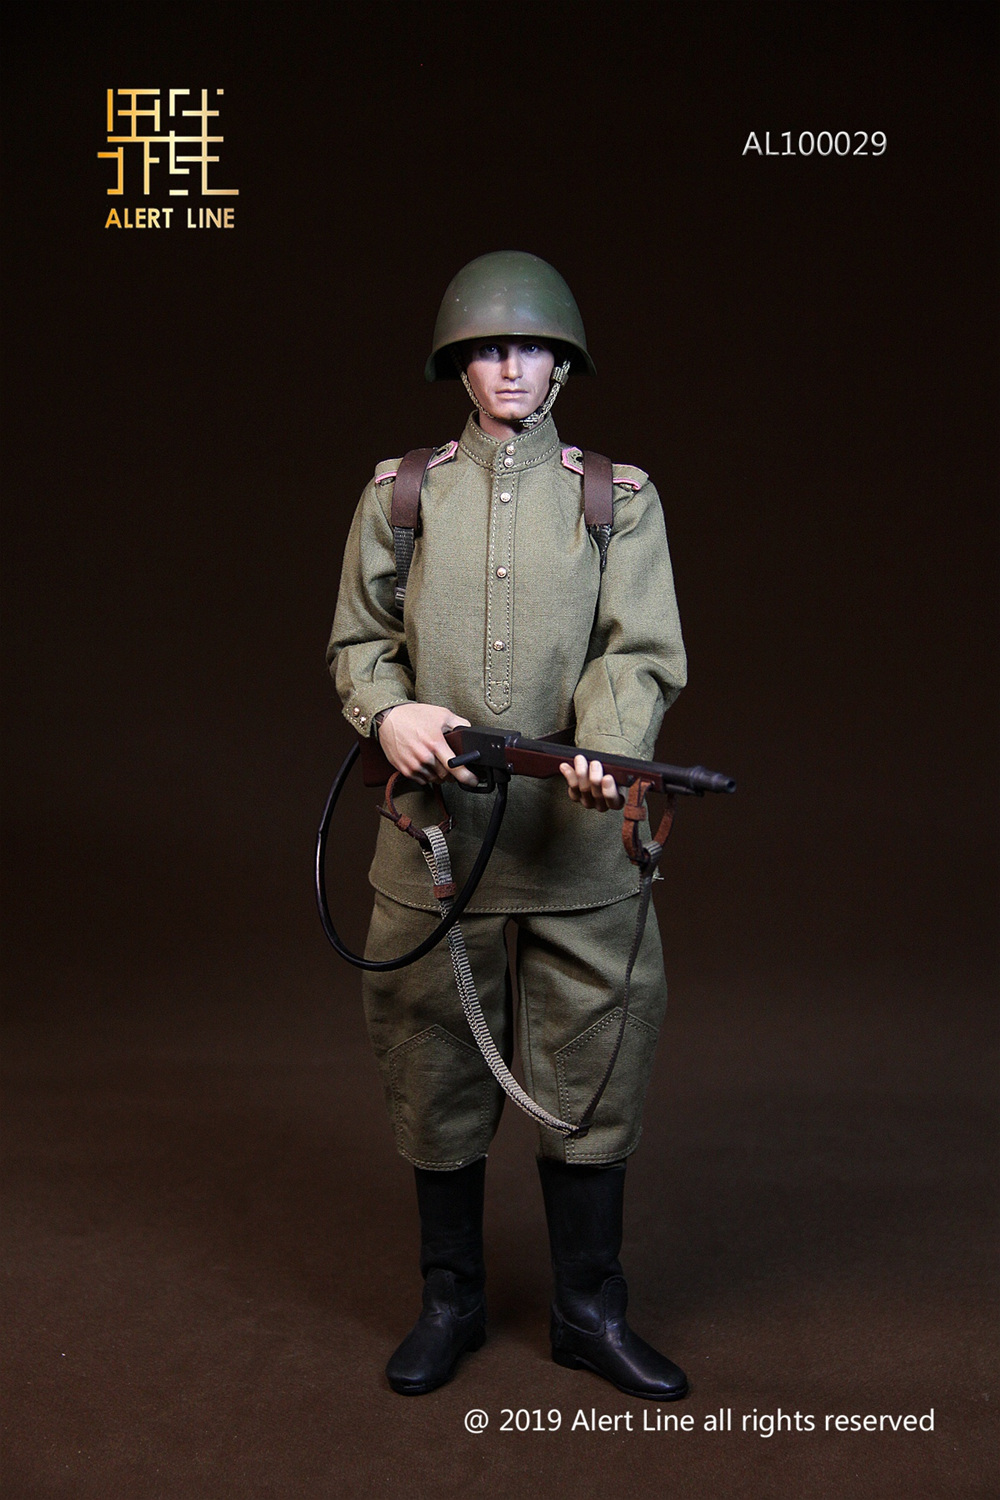 male - NEW PRODUCT: Alert Line: 1/6 WWII World War II Soviet Union - assault engineering action figure AL100029# 11210711